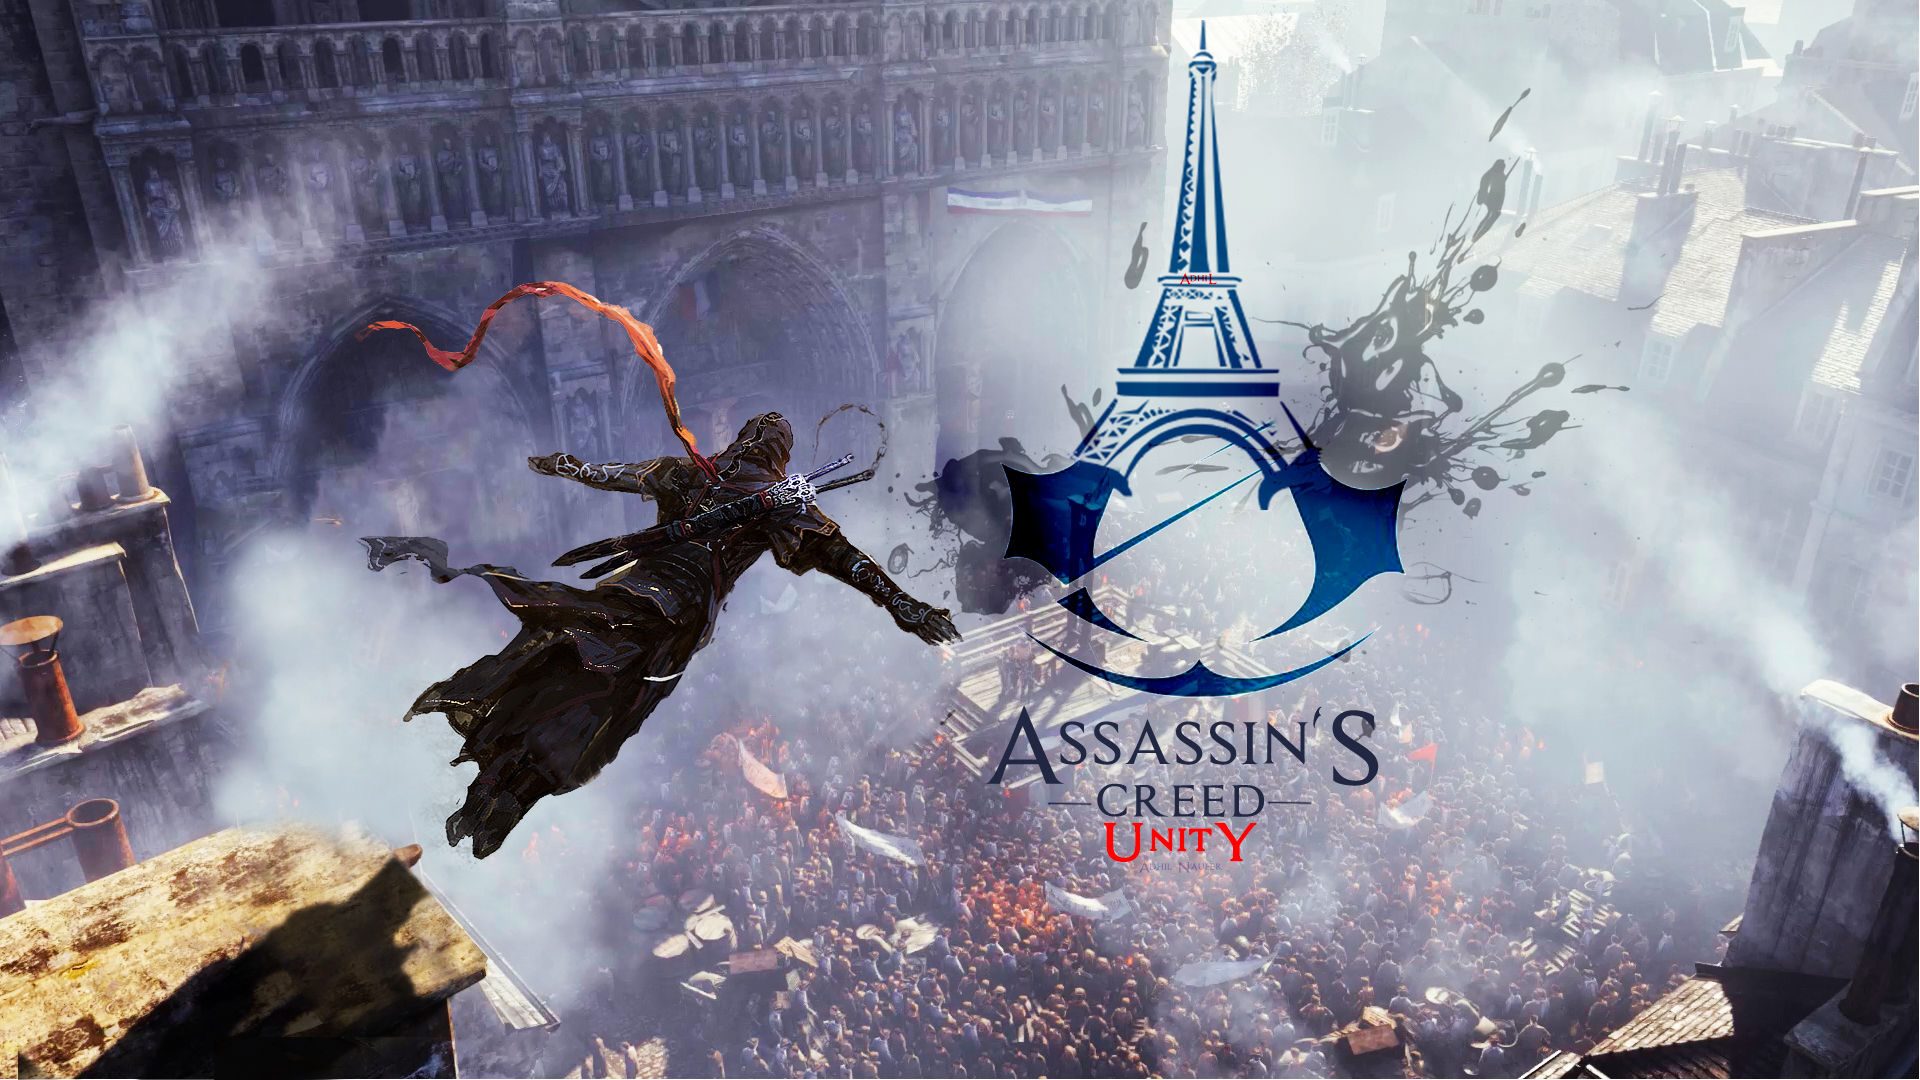 Collection Assassins Creed Video Game Assassins Creed Unity 495796 1920x1080